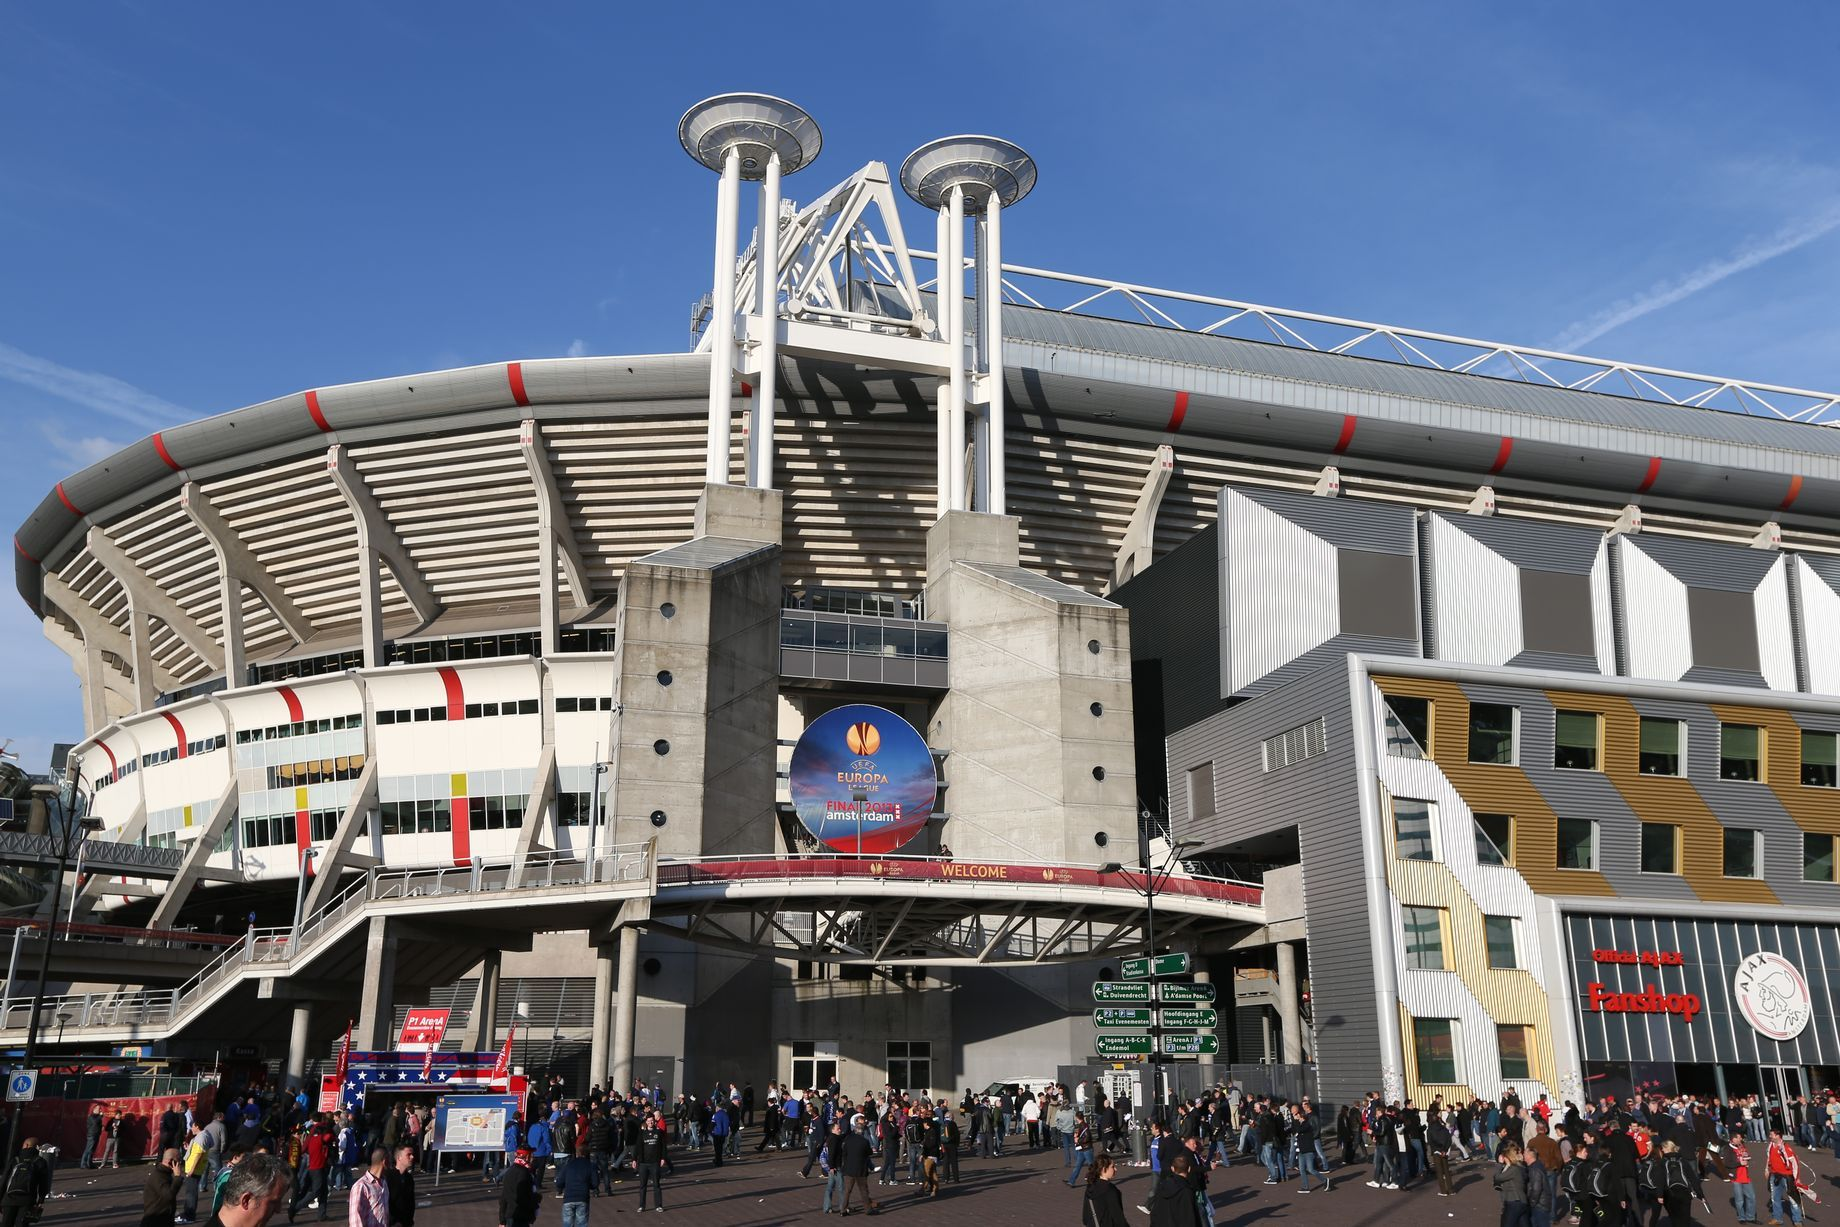 Chelsea consider Wembley or Twickenham as temporary home during planned expansion works - Get West London